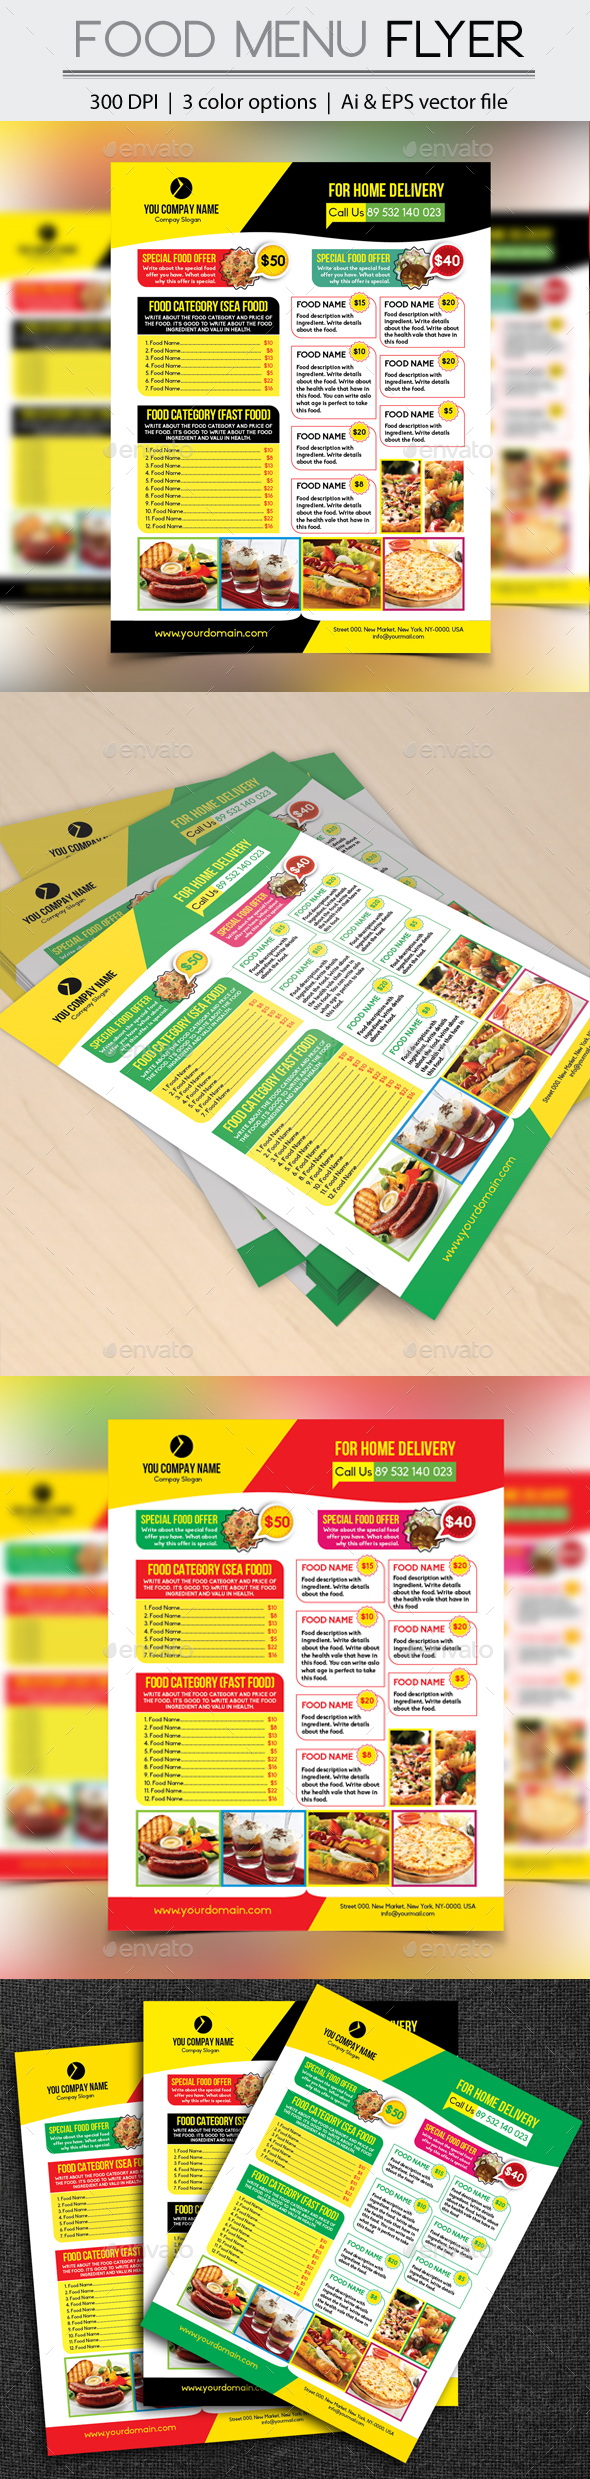 Food Menu Flyer - Restaurant Flyers